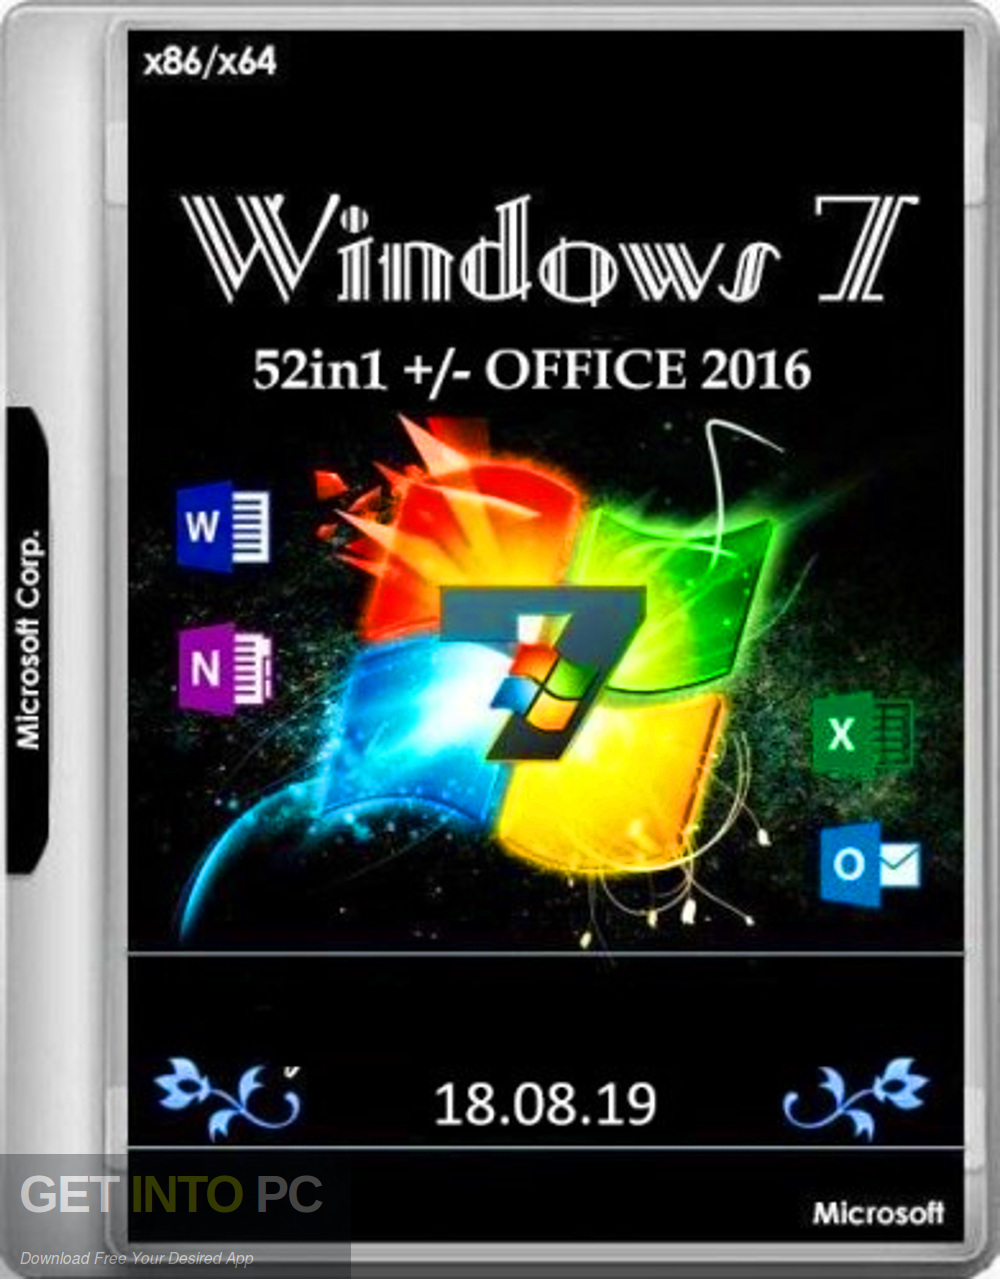 Windows 7 SP1 52in1 + Office 2016 Updated Aug 2019 Free Download-GetintoPC.com